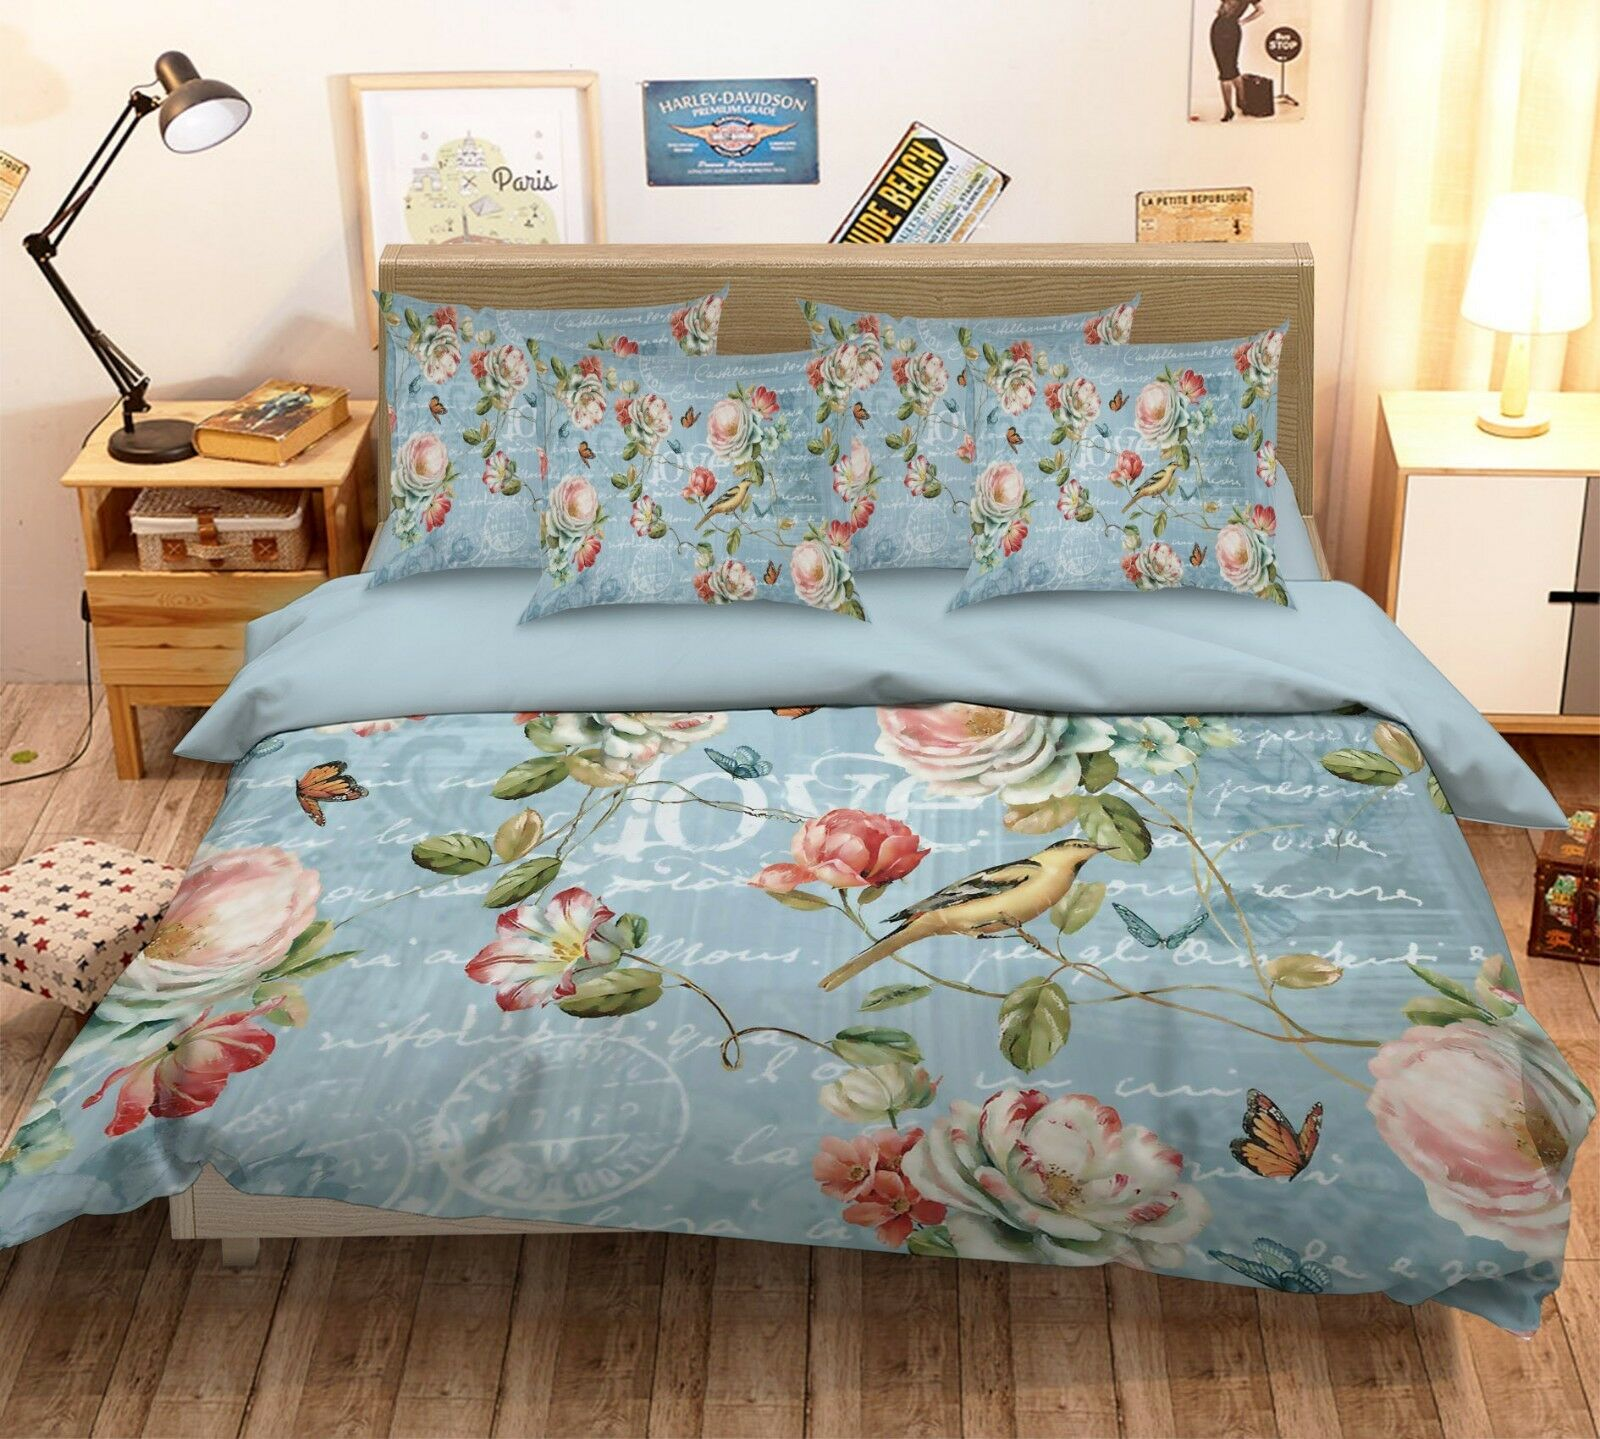 3D Flower Pattern 59 Bed Pillowcases Quilt Duvet Cover Set Single King UK Summer